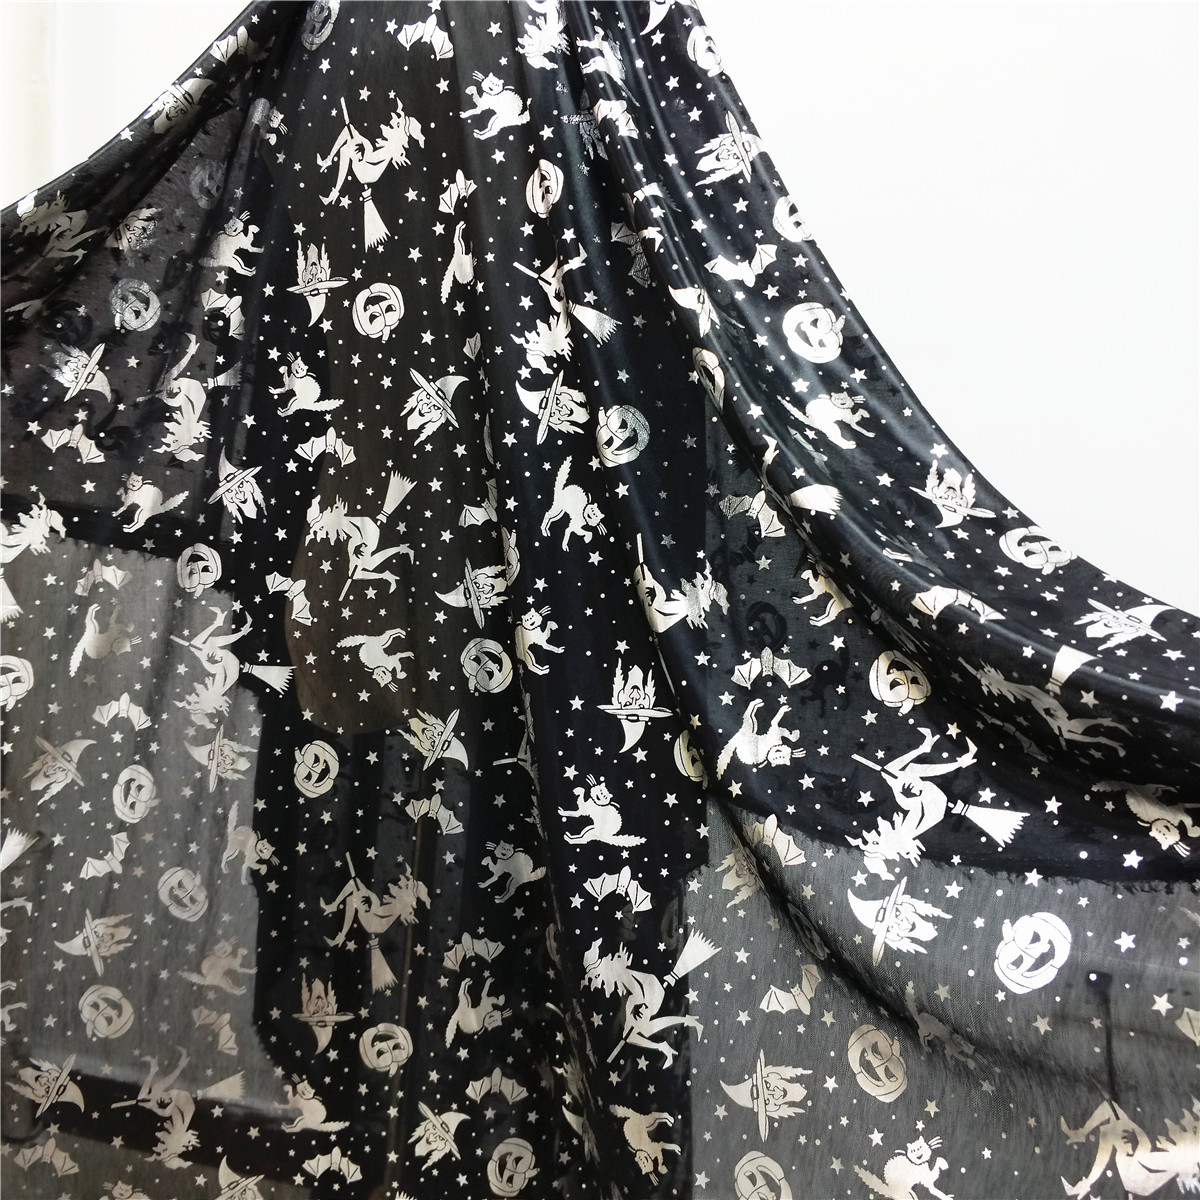 Halloween-Prints-Foil-Metallic-Soft-Tulle-Net-Fabric-Party-Costume-Hat-Craft